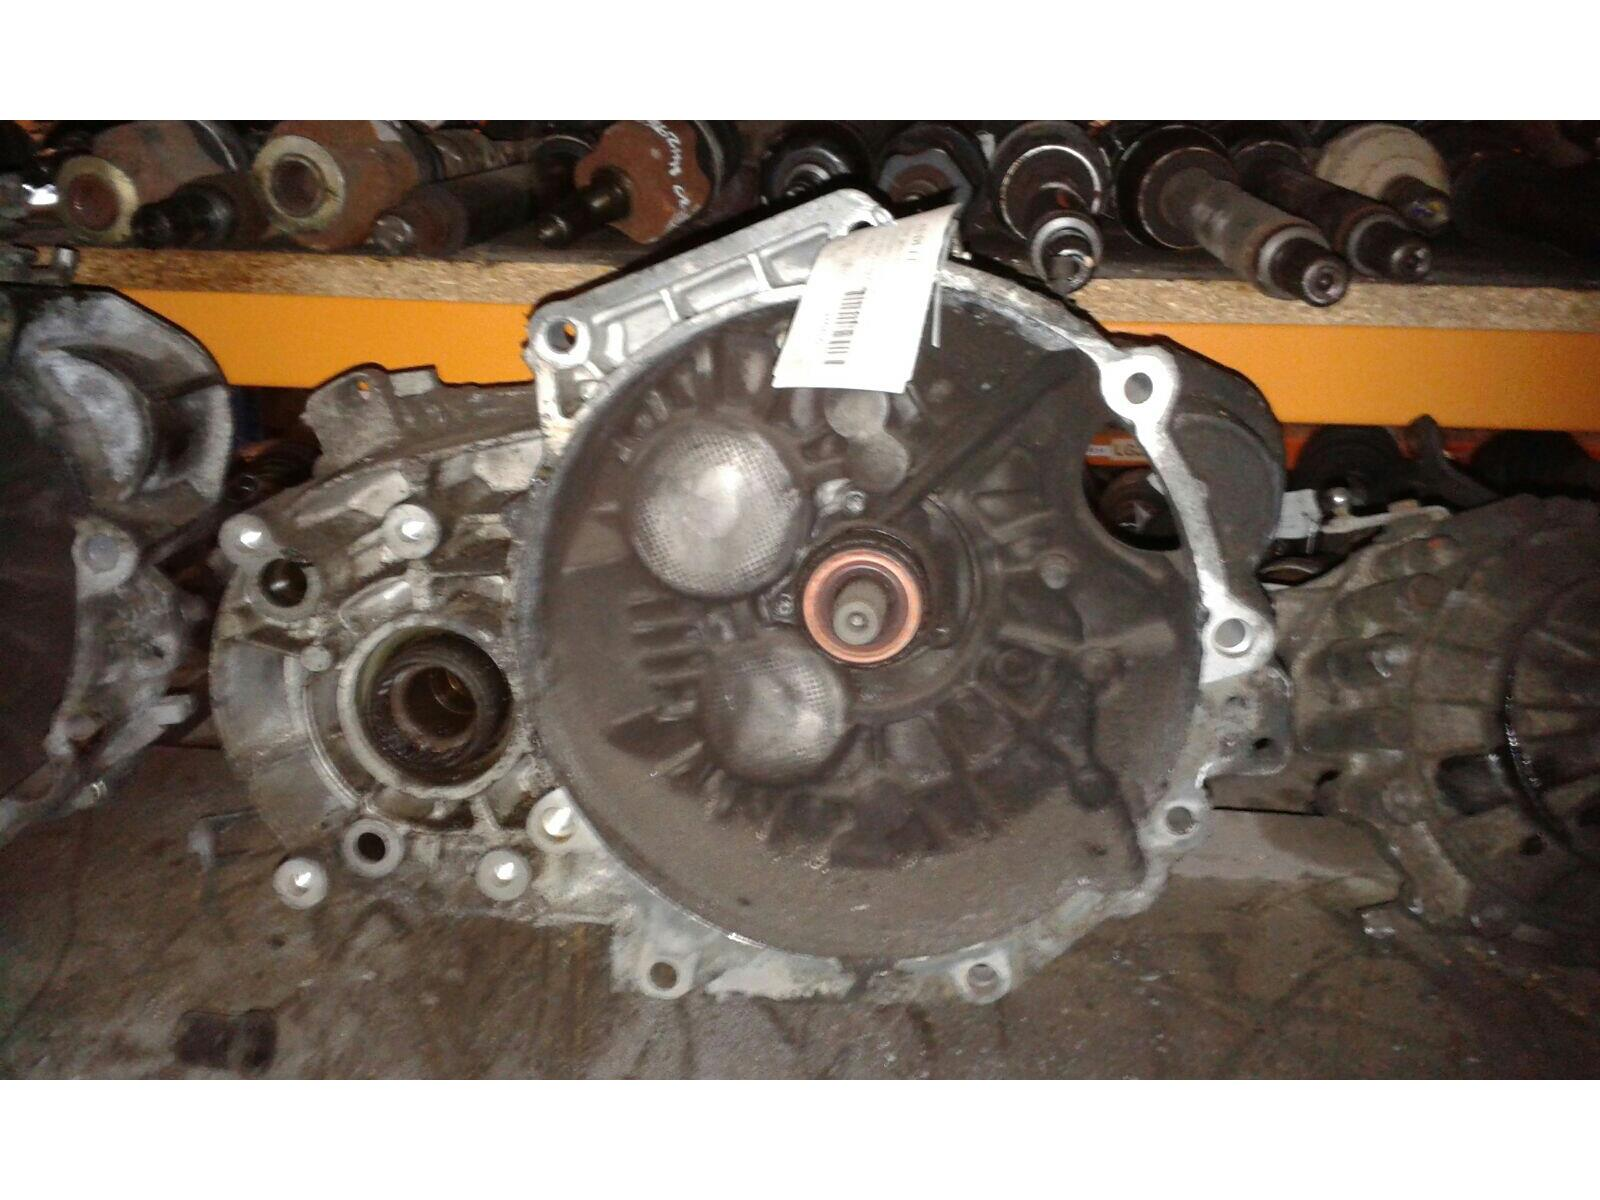 Audi Tt 1999 To 2006 Transmission Assembly Petrol Manual For Clutch Diagram How Transmissions 2001 18 5 Speed Gearbox Fhb 986406